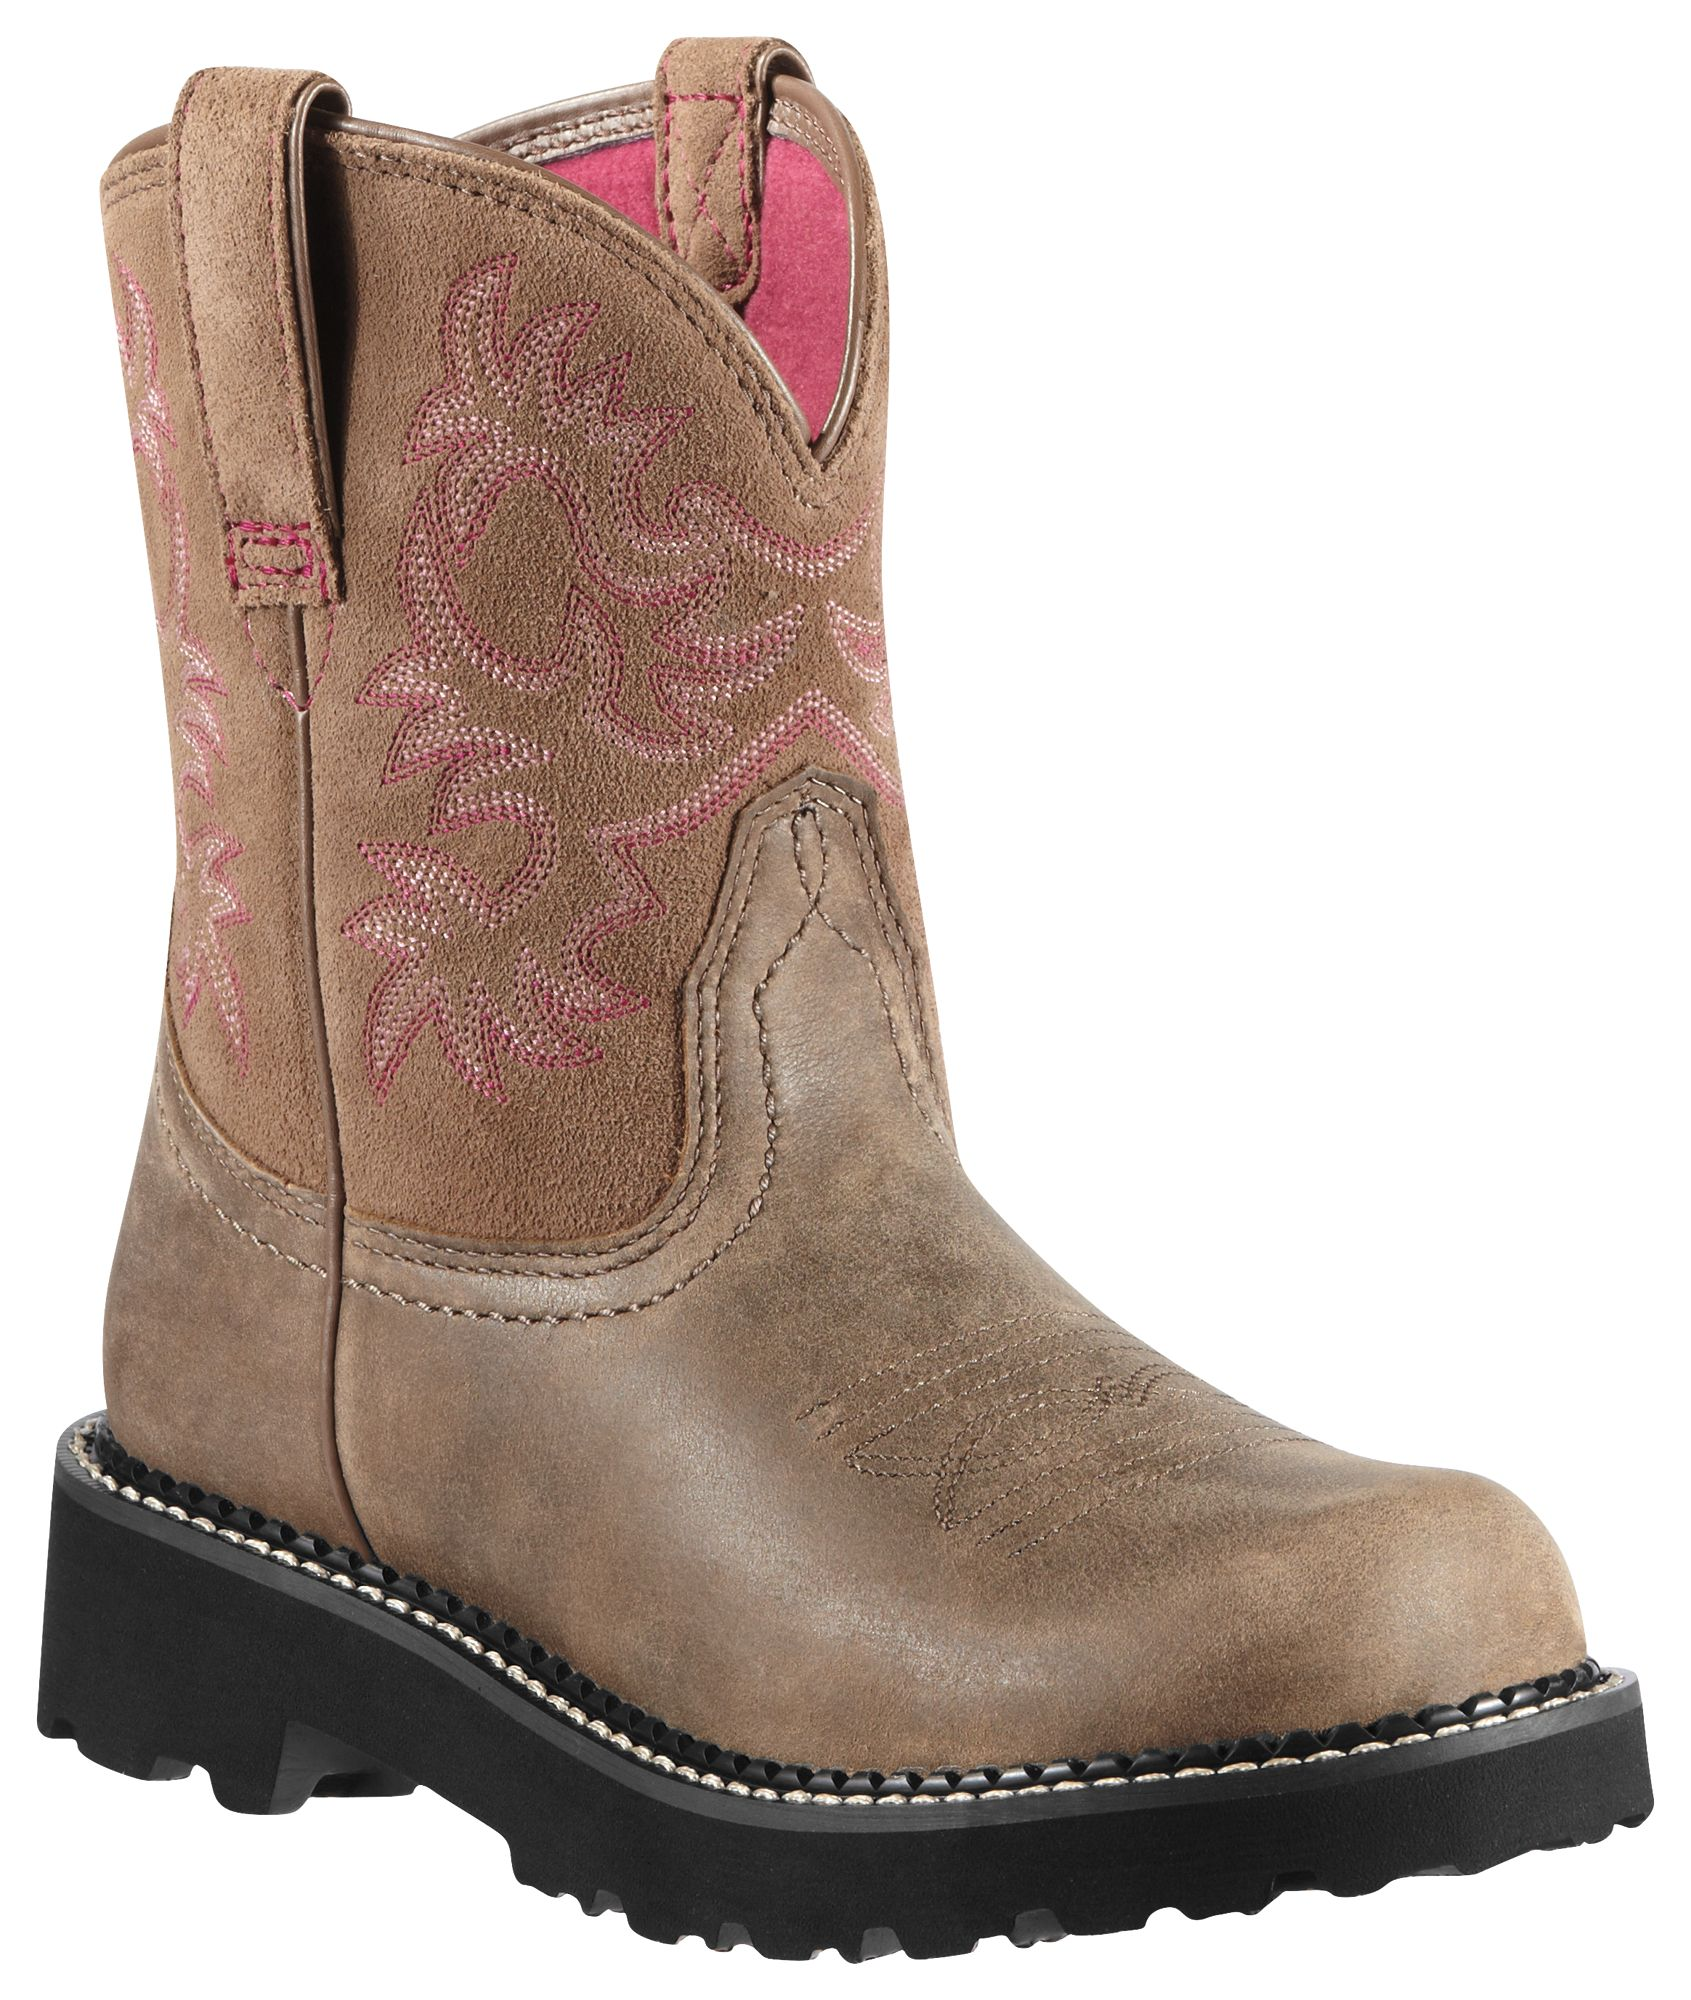 Ariat Women's Fatbaby Original Western Boots | DICK'S Sporting Goods